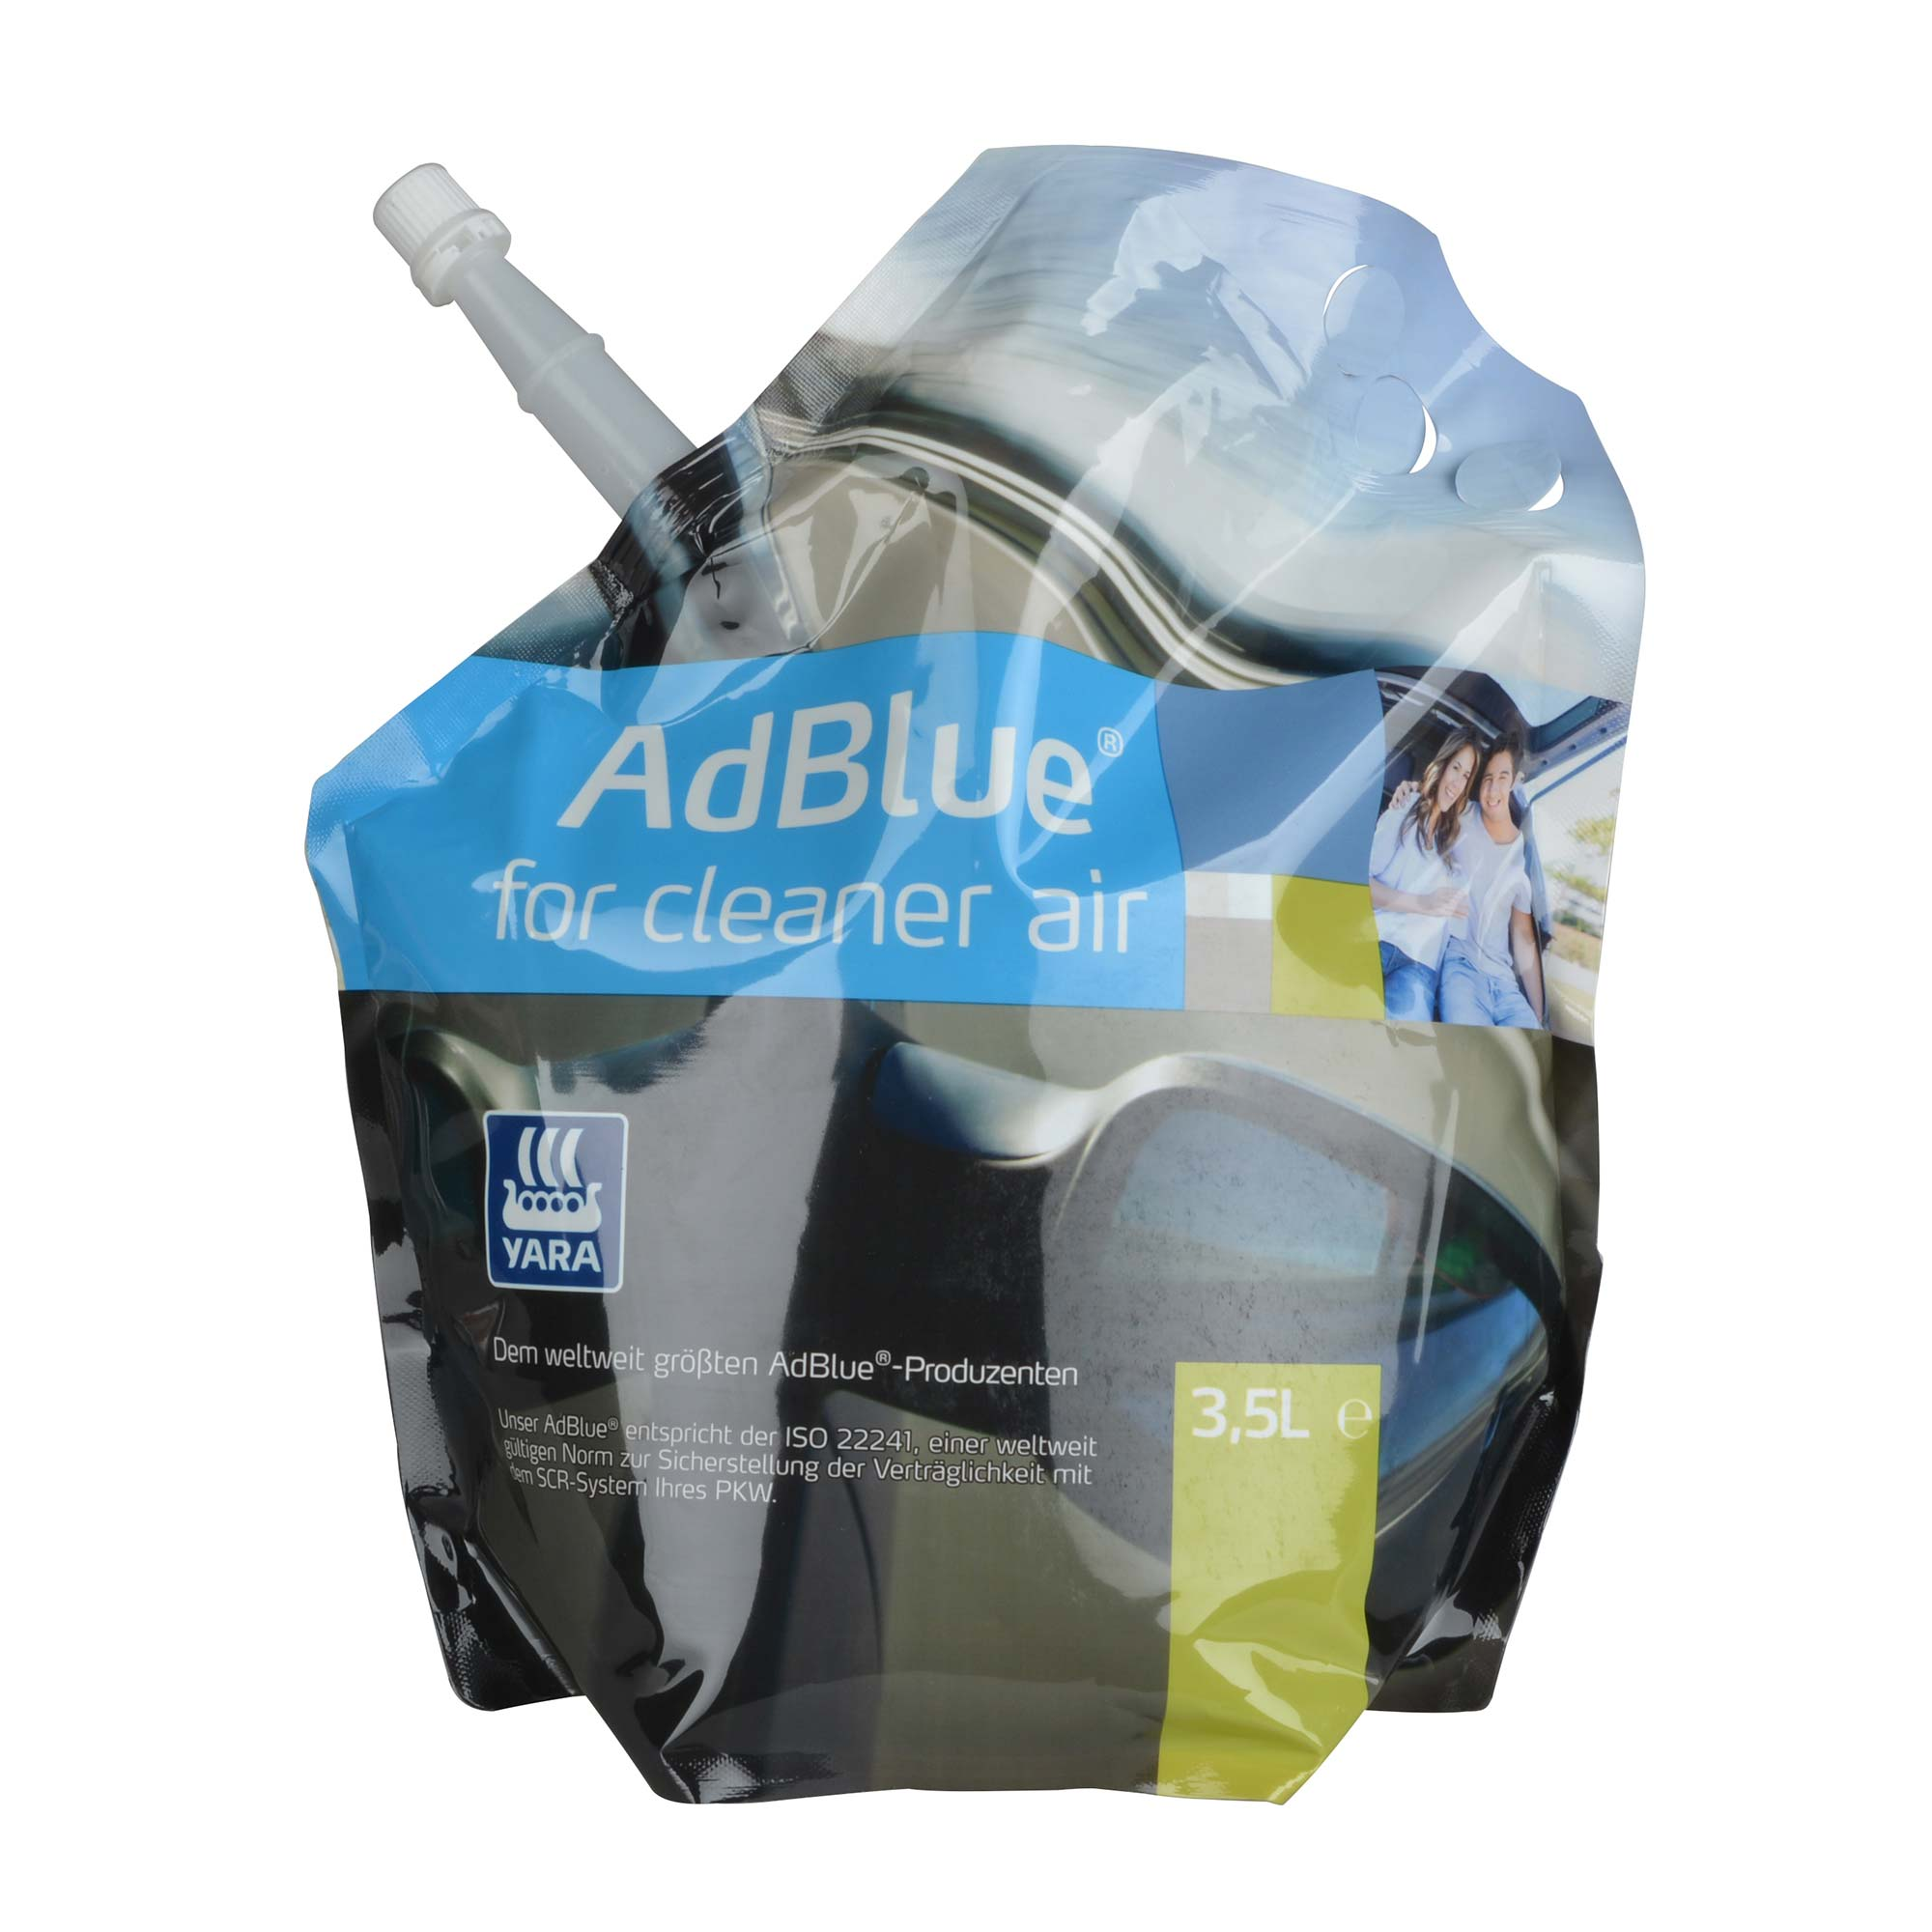 AdBlue® for Cleaner Air - Yara - 3x 3,5 Liter Standbeutel – Bild 2